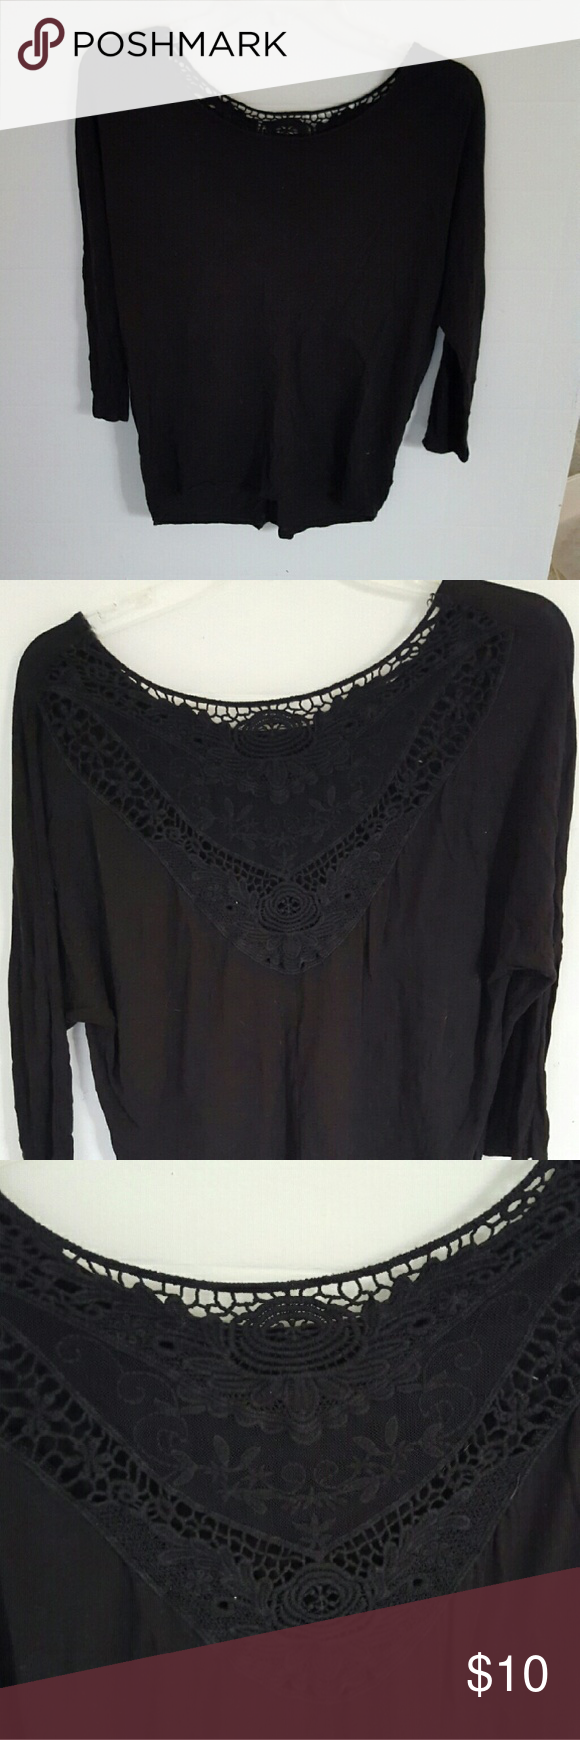 Black shirt Black, three quarter length, flowy top from American Eagle. Super cute on. Great for tucking into a skirt! From a smoke free home! American Eagle Outfitters Tops Blouses